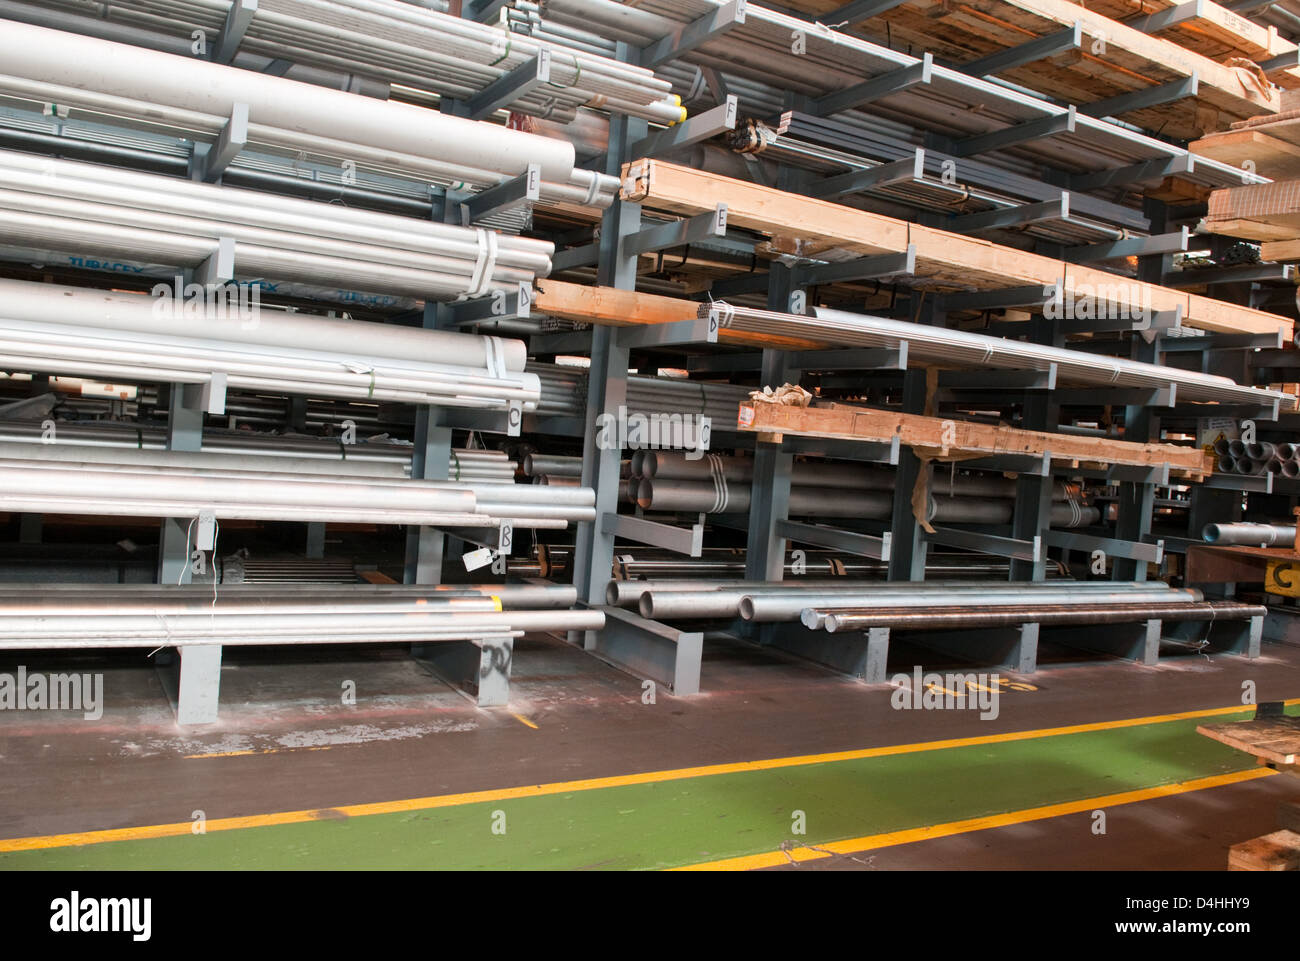 Steel tubes stacked in a warehouse at a steel stock holders in the West Midlands, UK, with a safety walkway painted Stock Photo